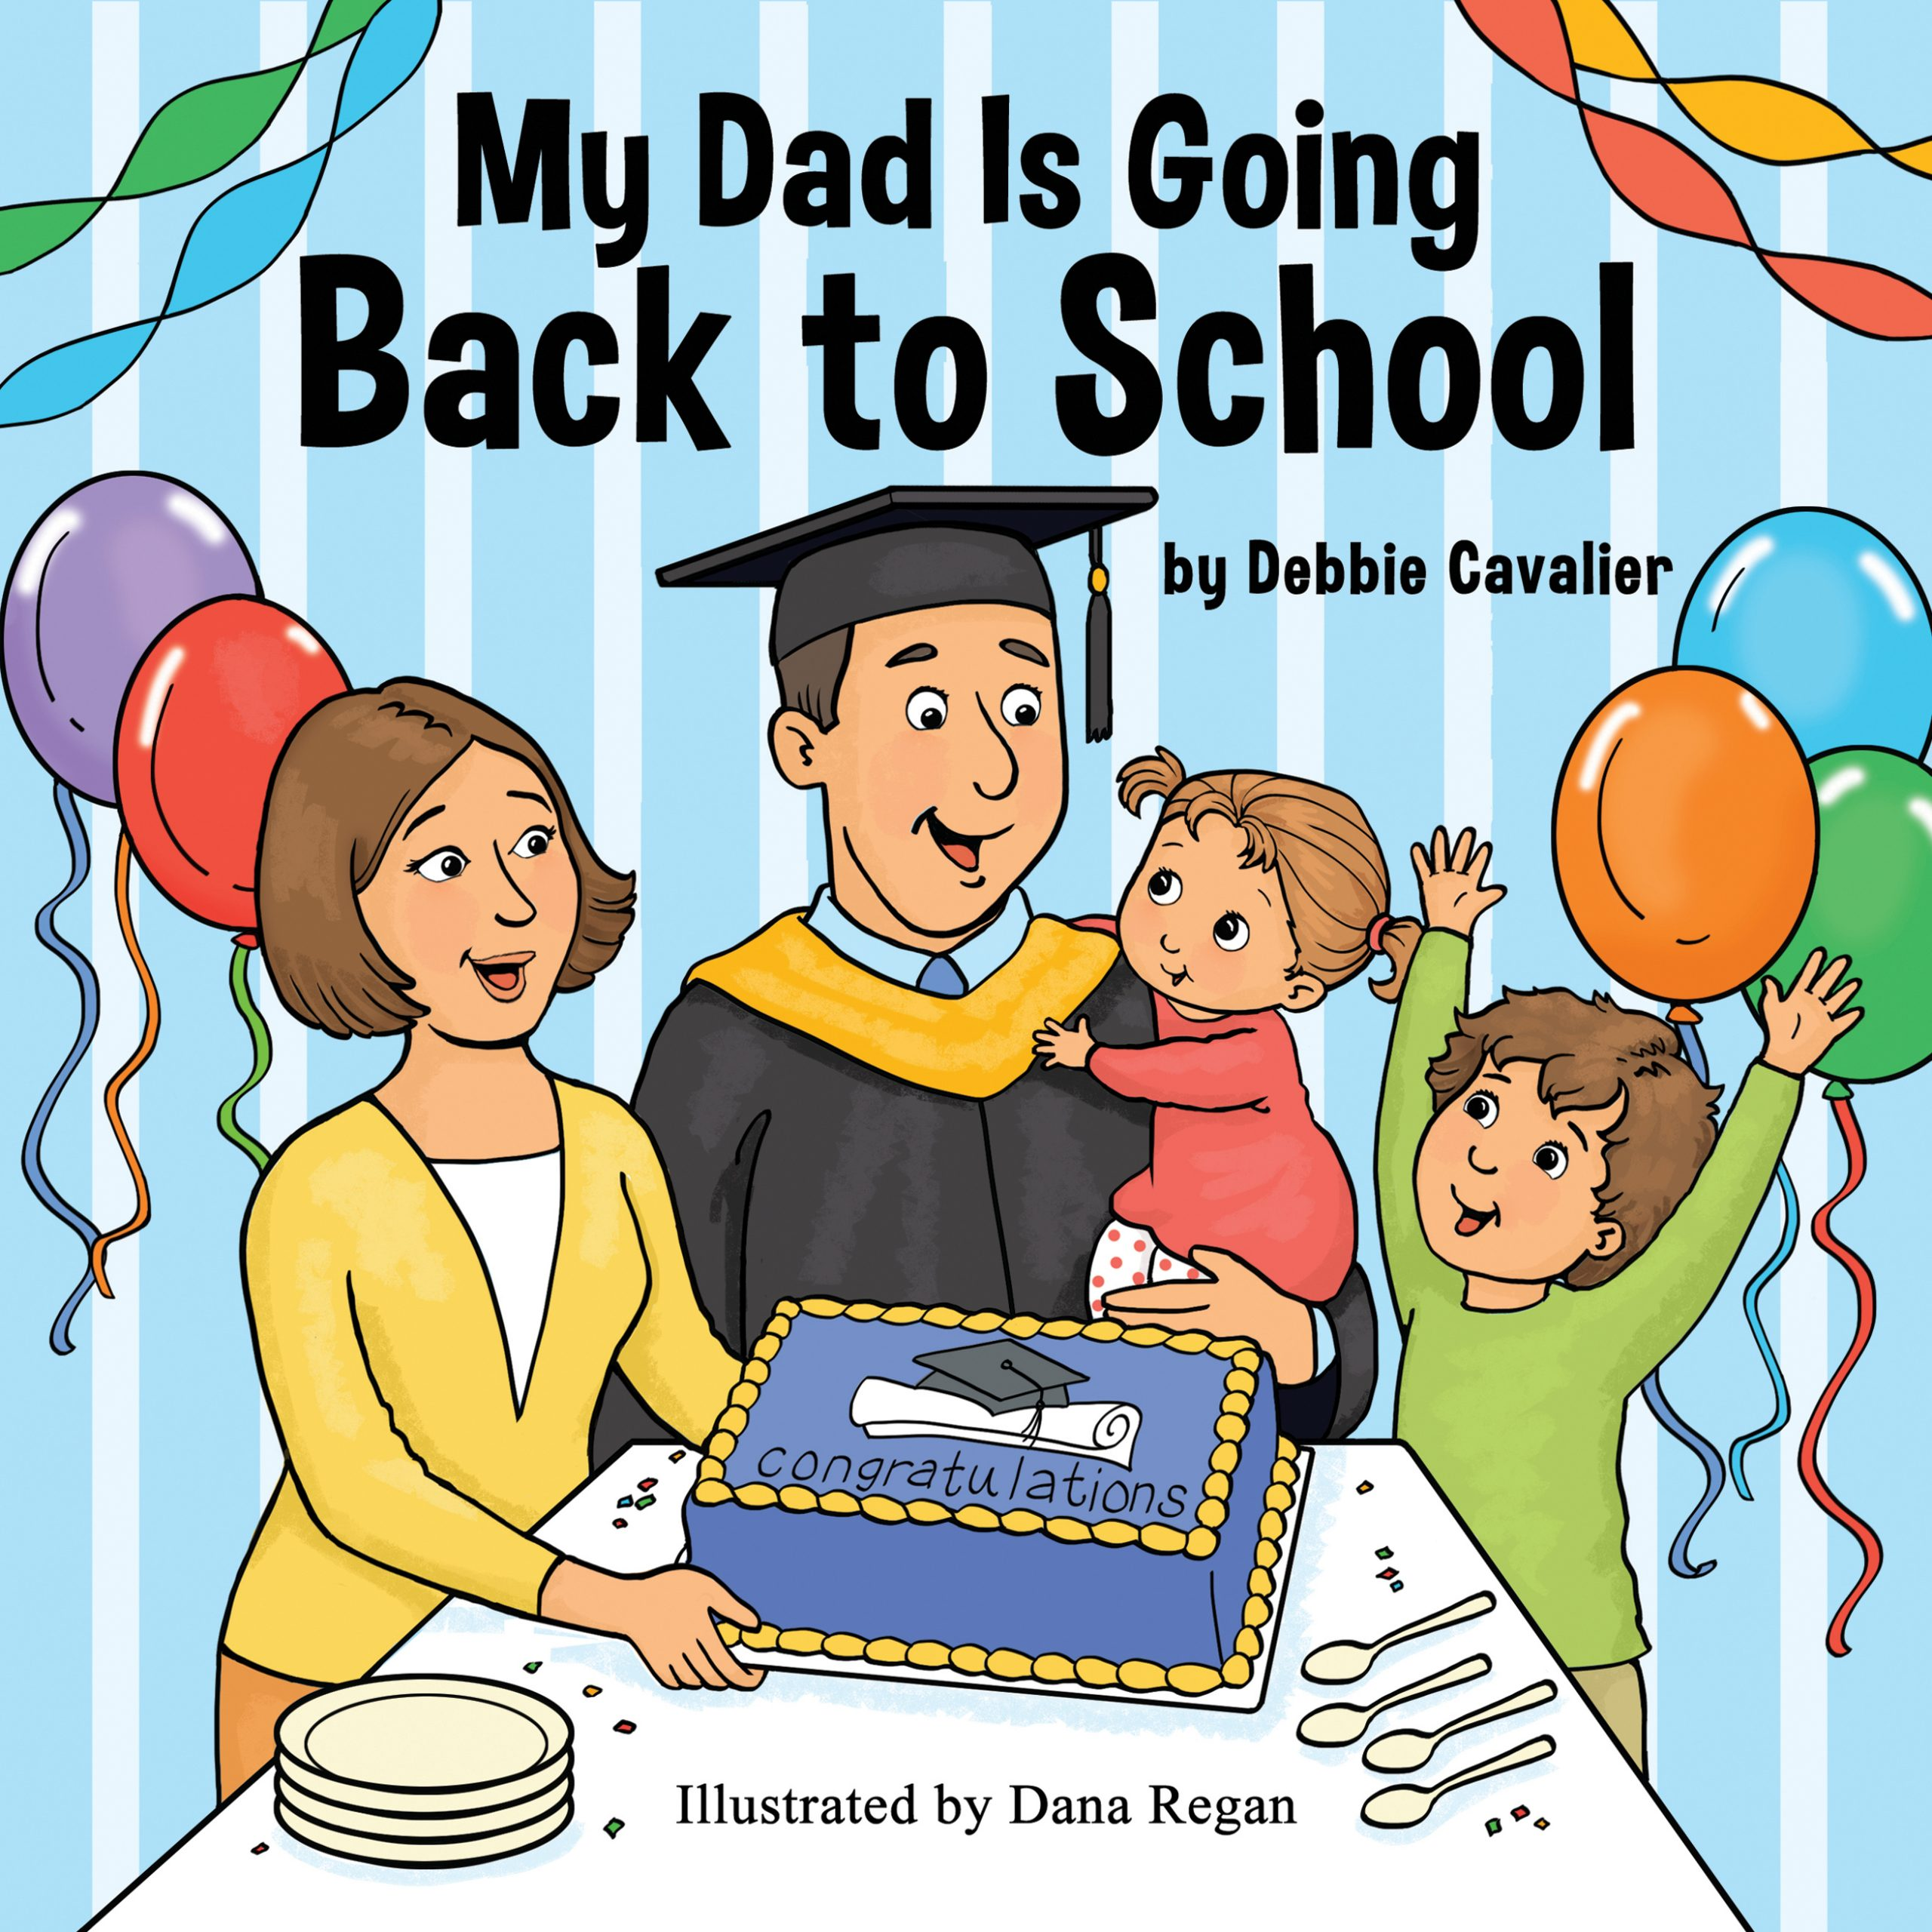 My Dad is Going Back to School